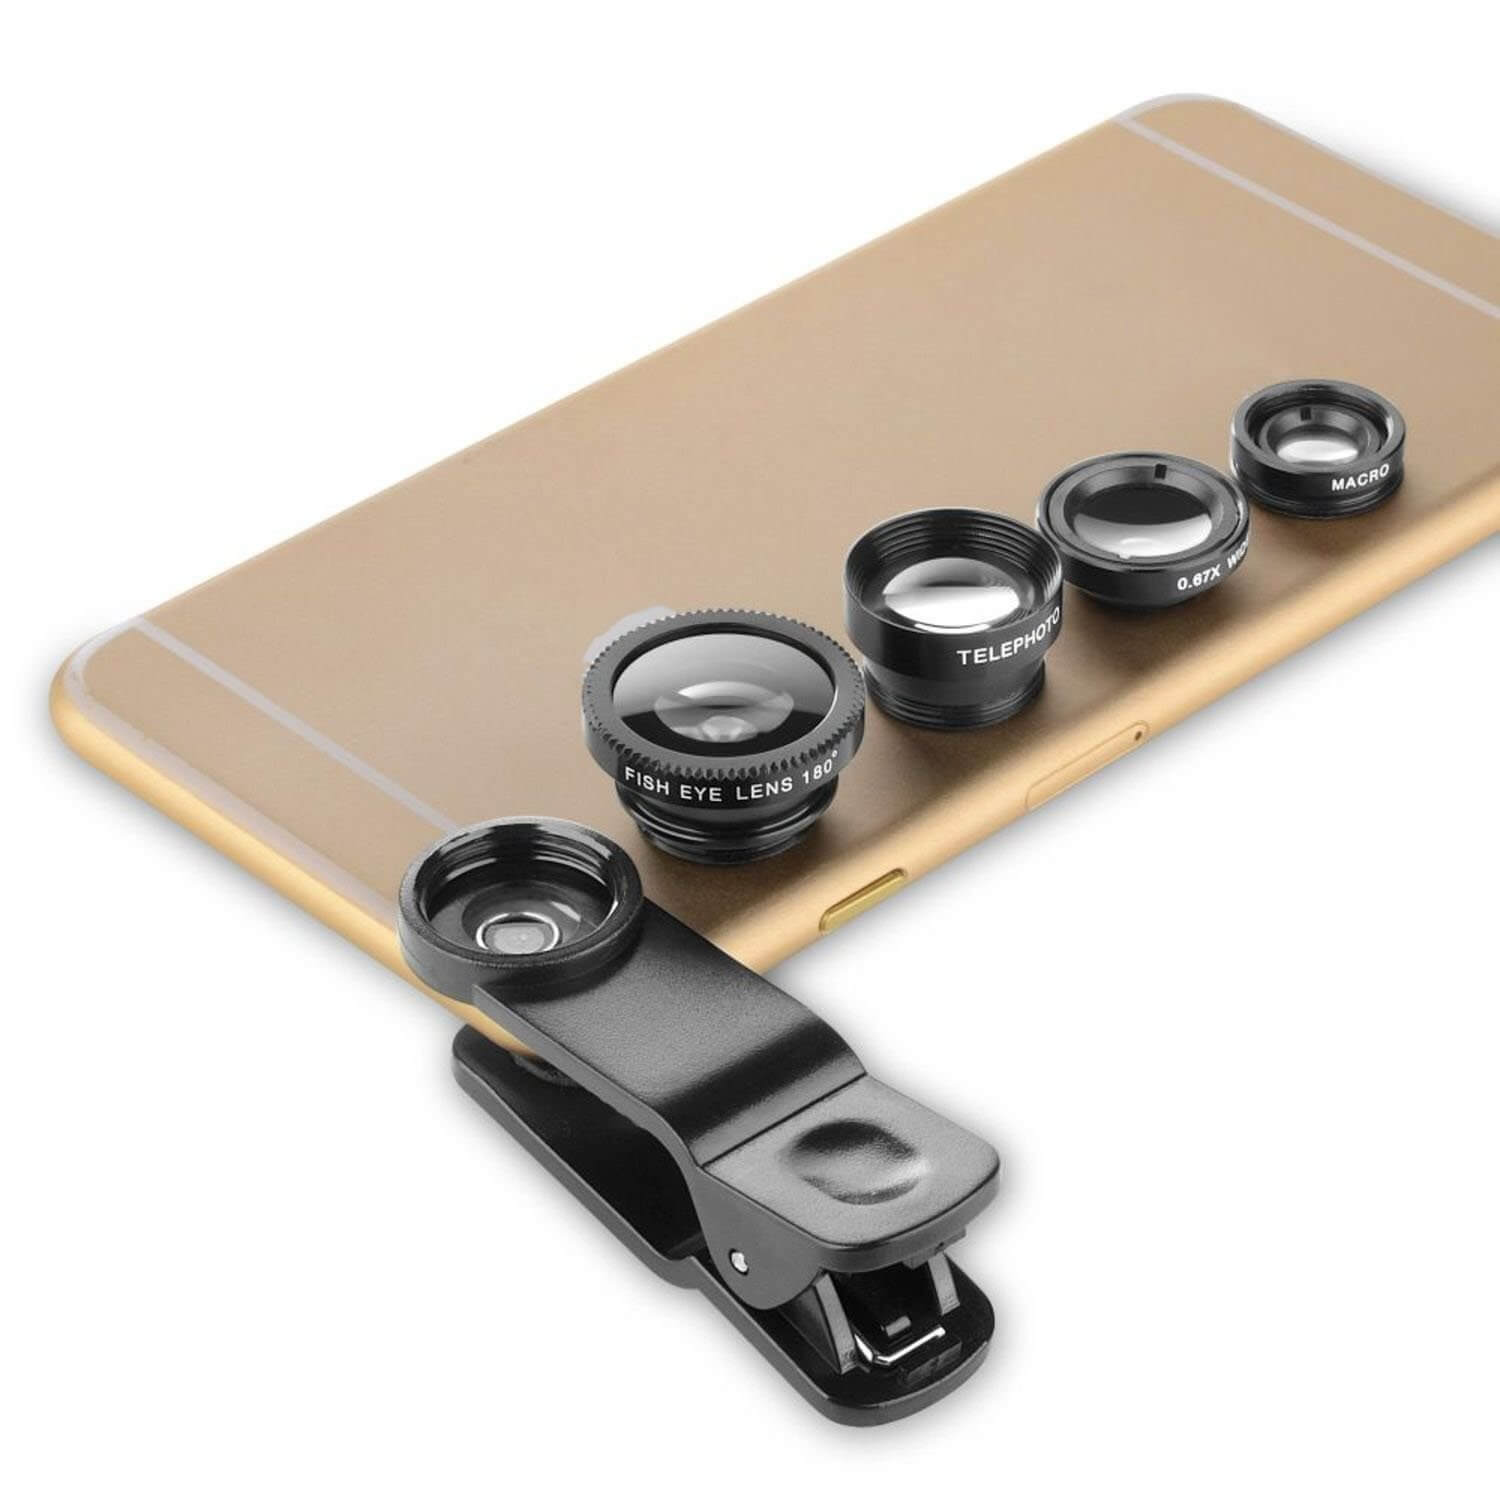 iPhone lens set